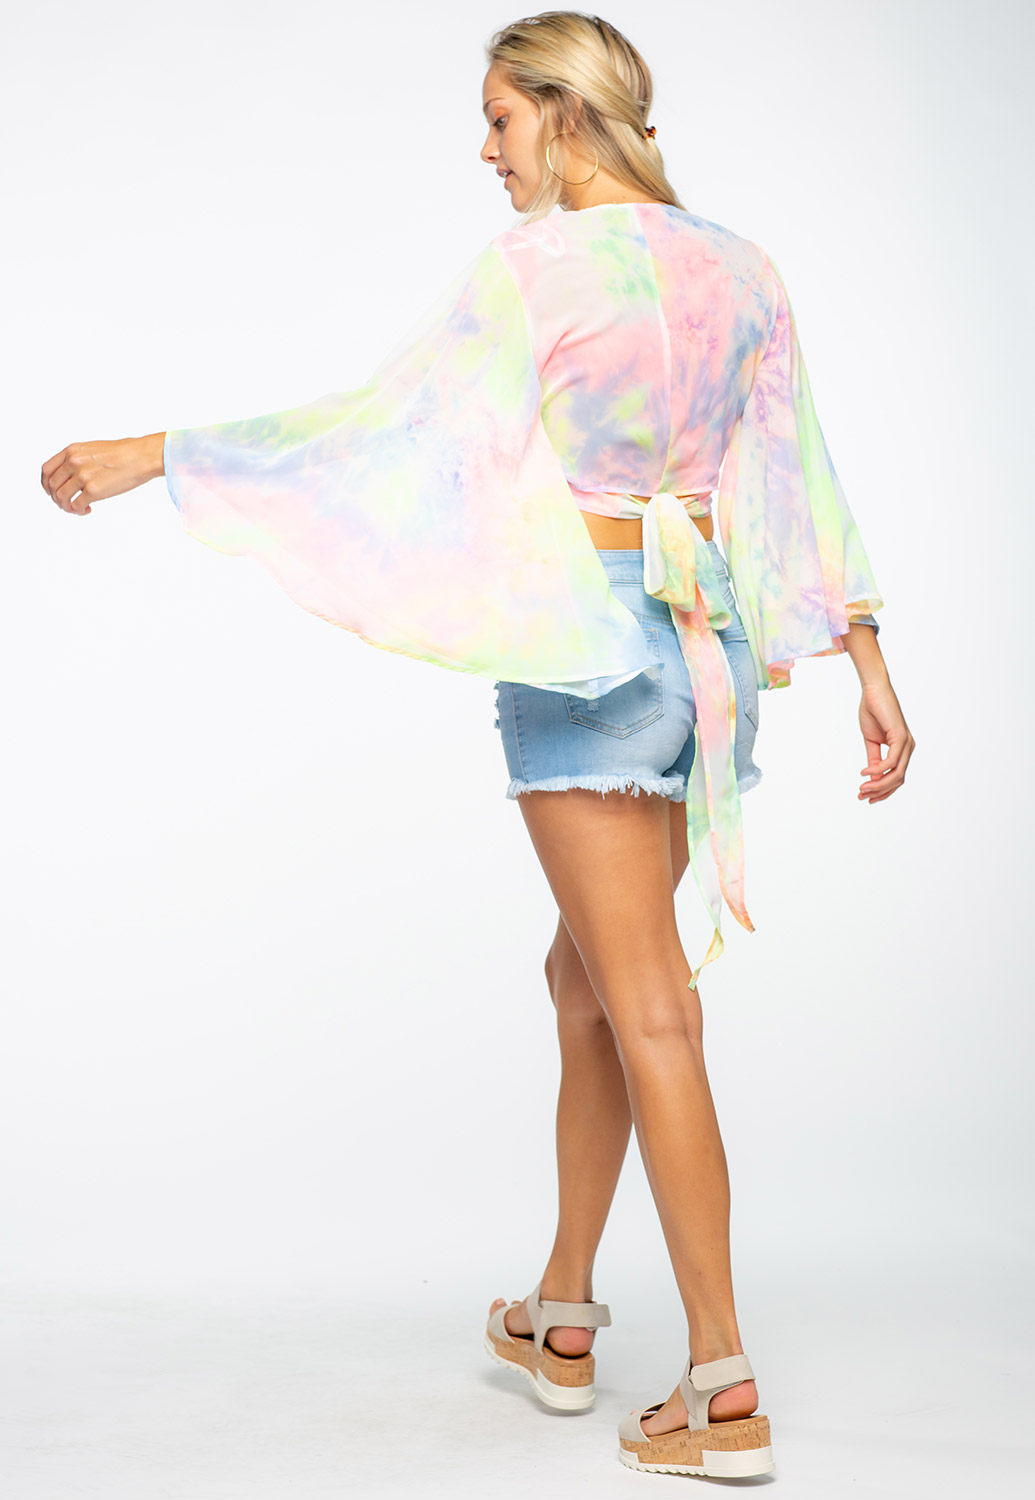 Kimono Inspired Wrap Around Top With Back Tie